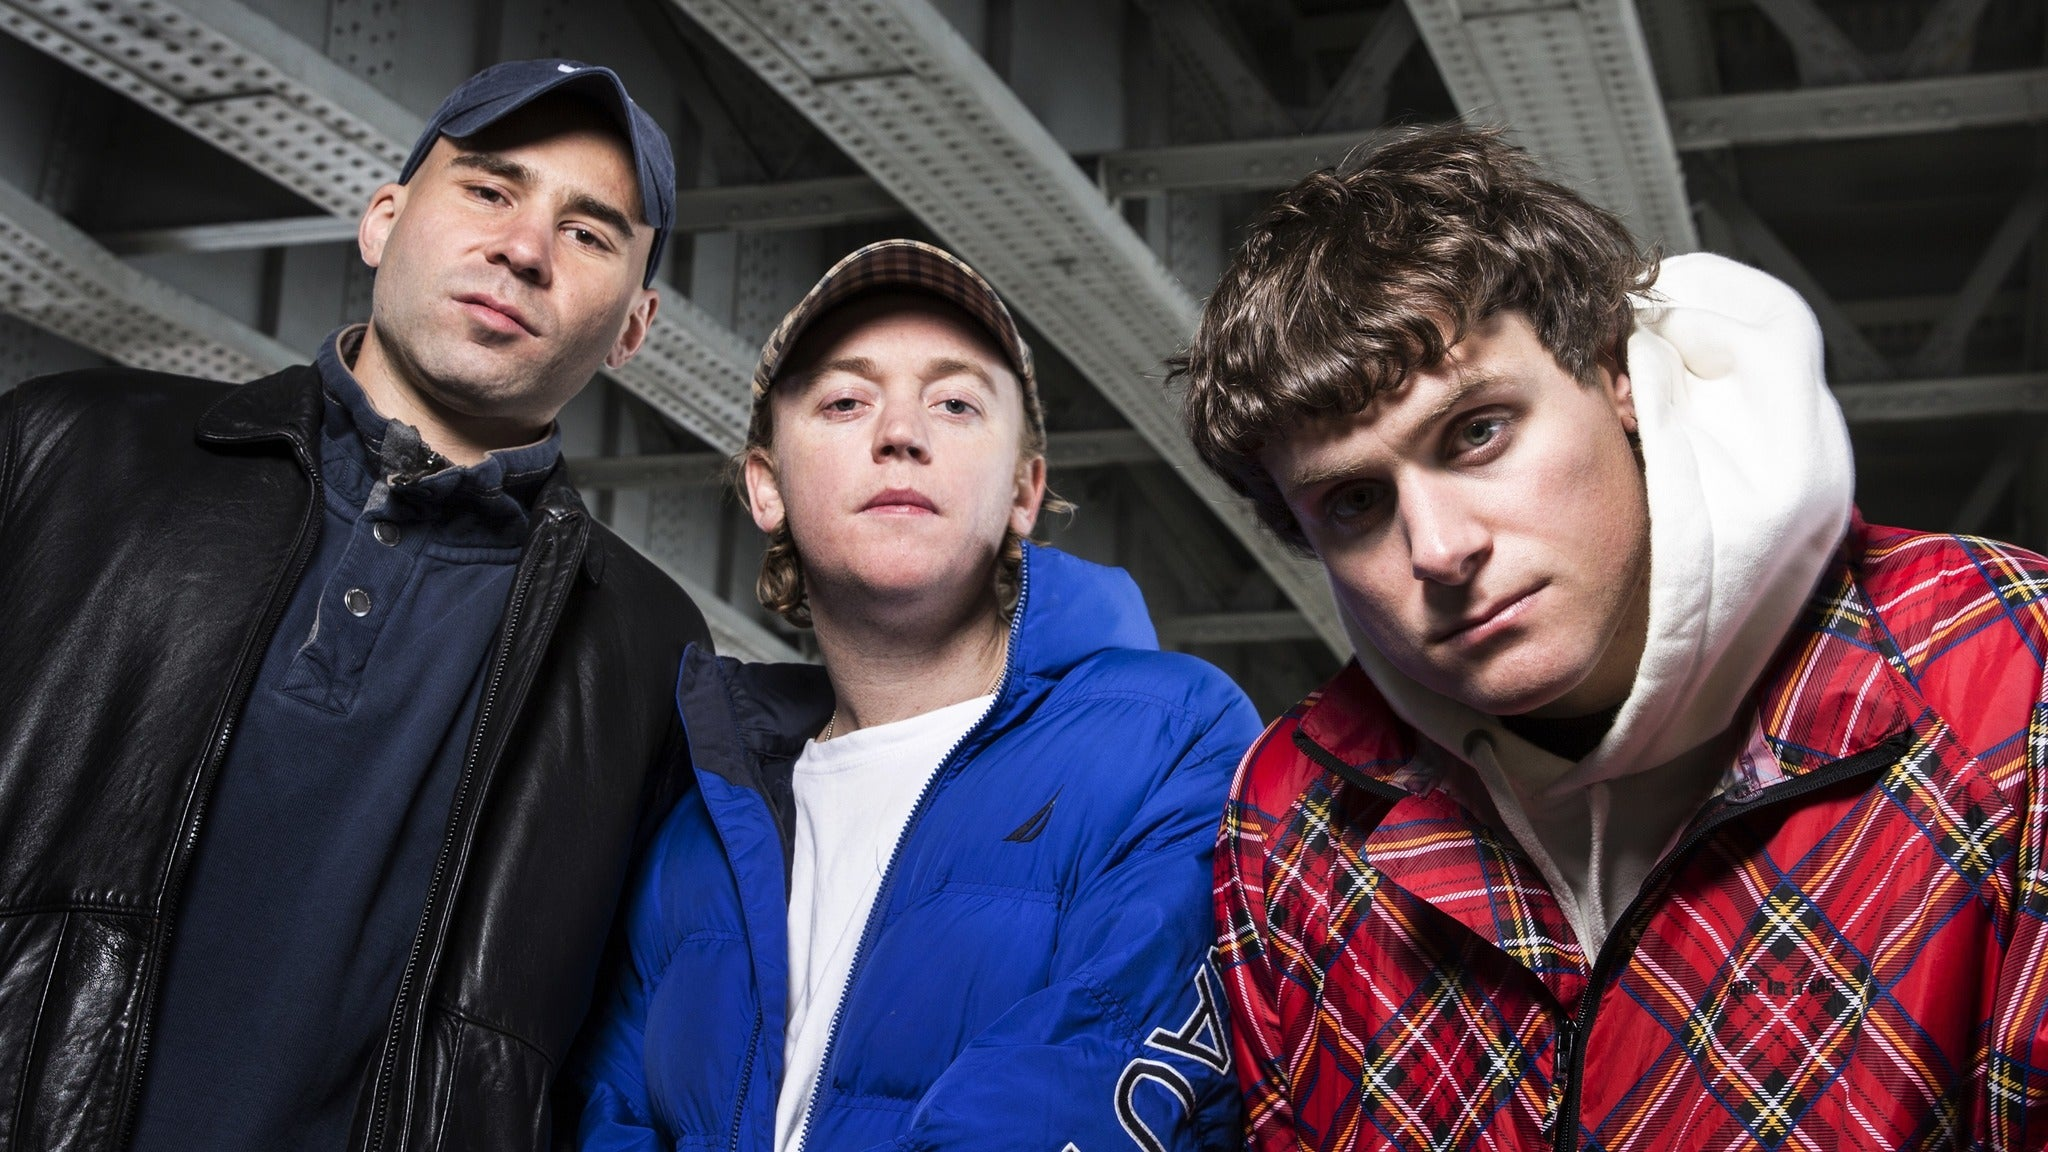 SOUNDS OF THE CITY - DMA'S